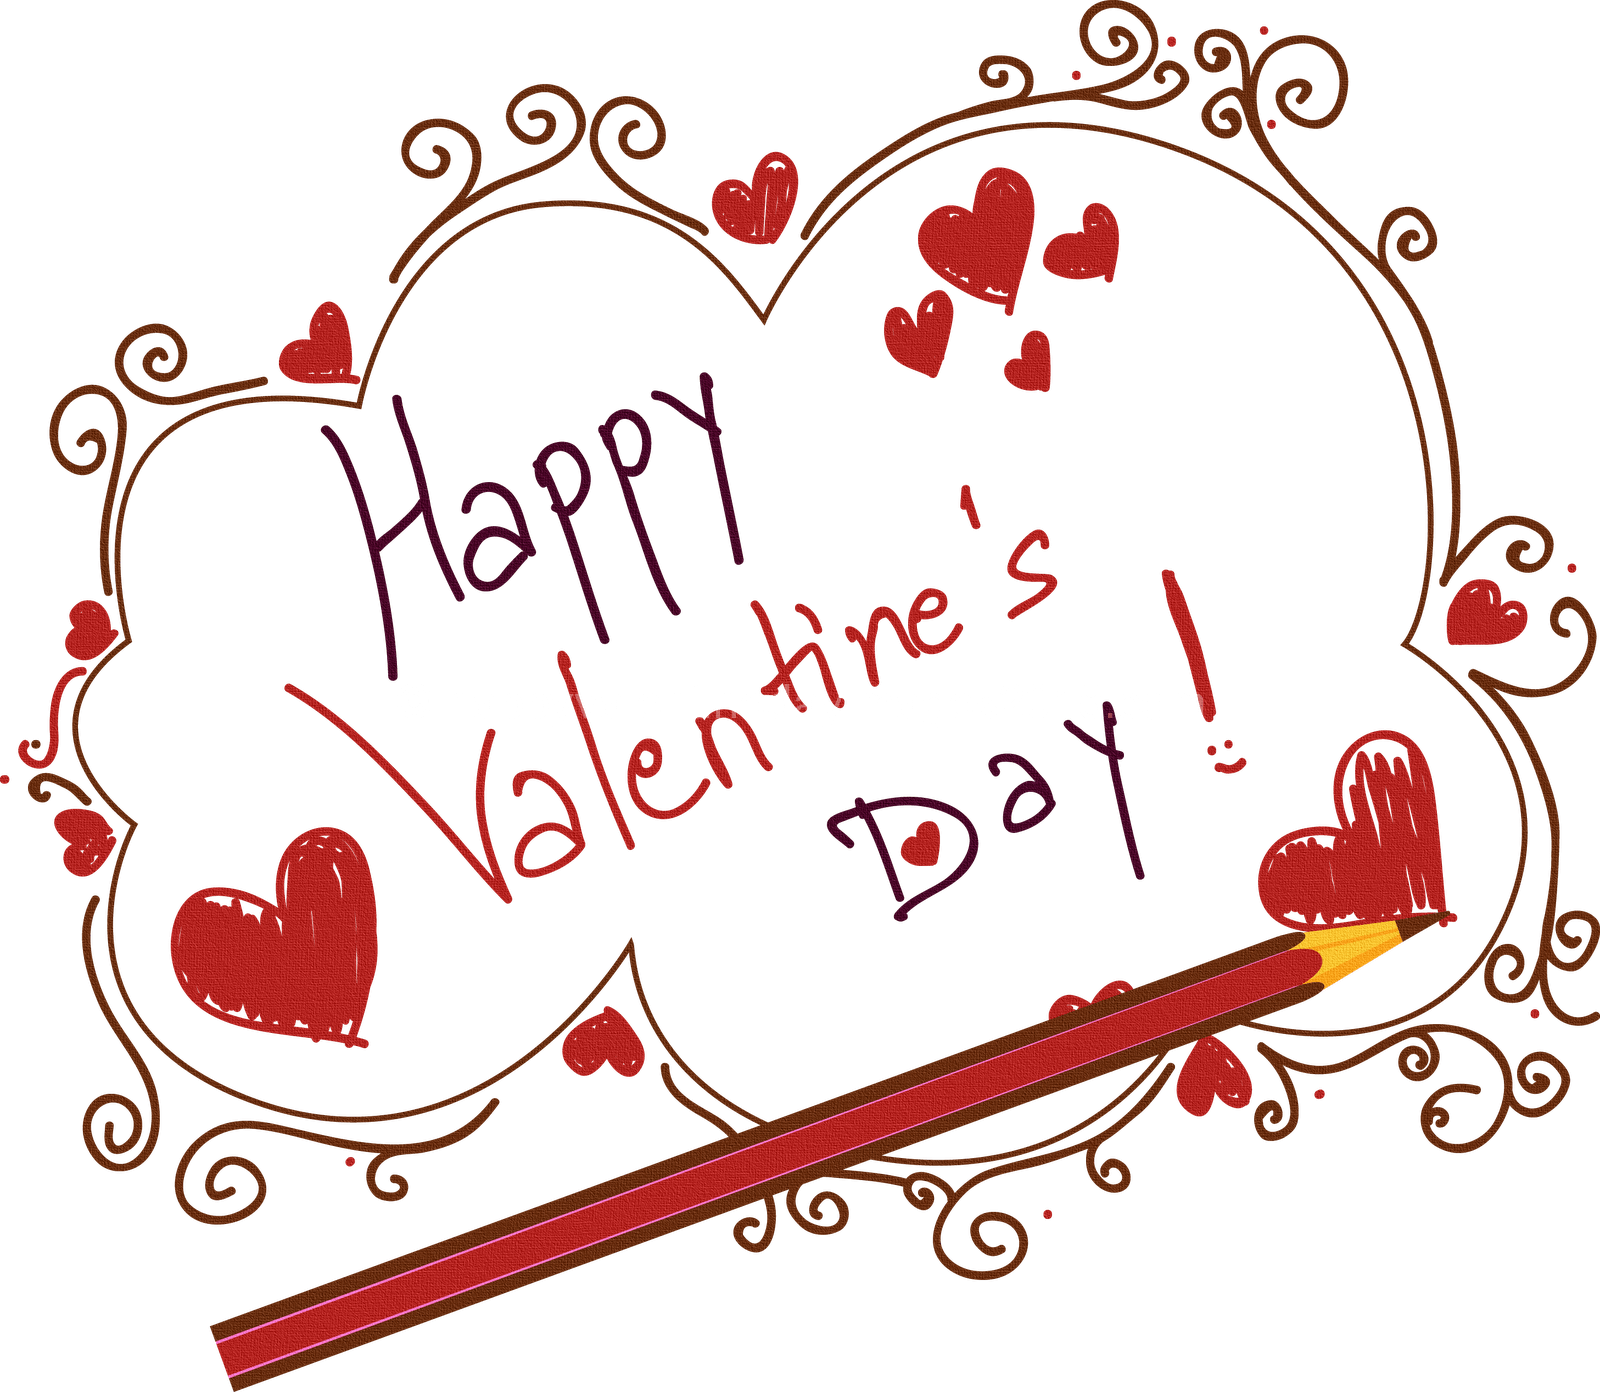 images of valentines day - Valentine Day 2018 PNG